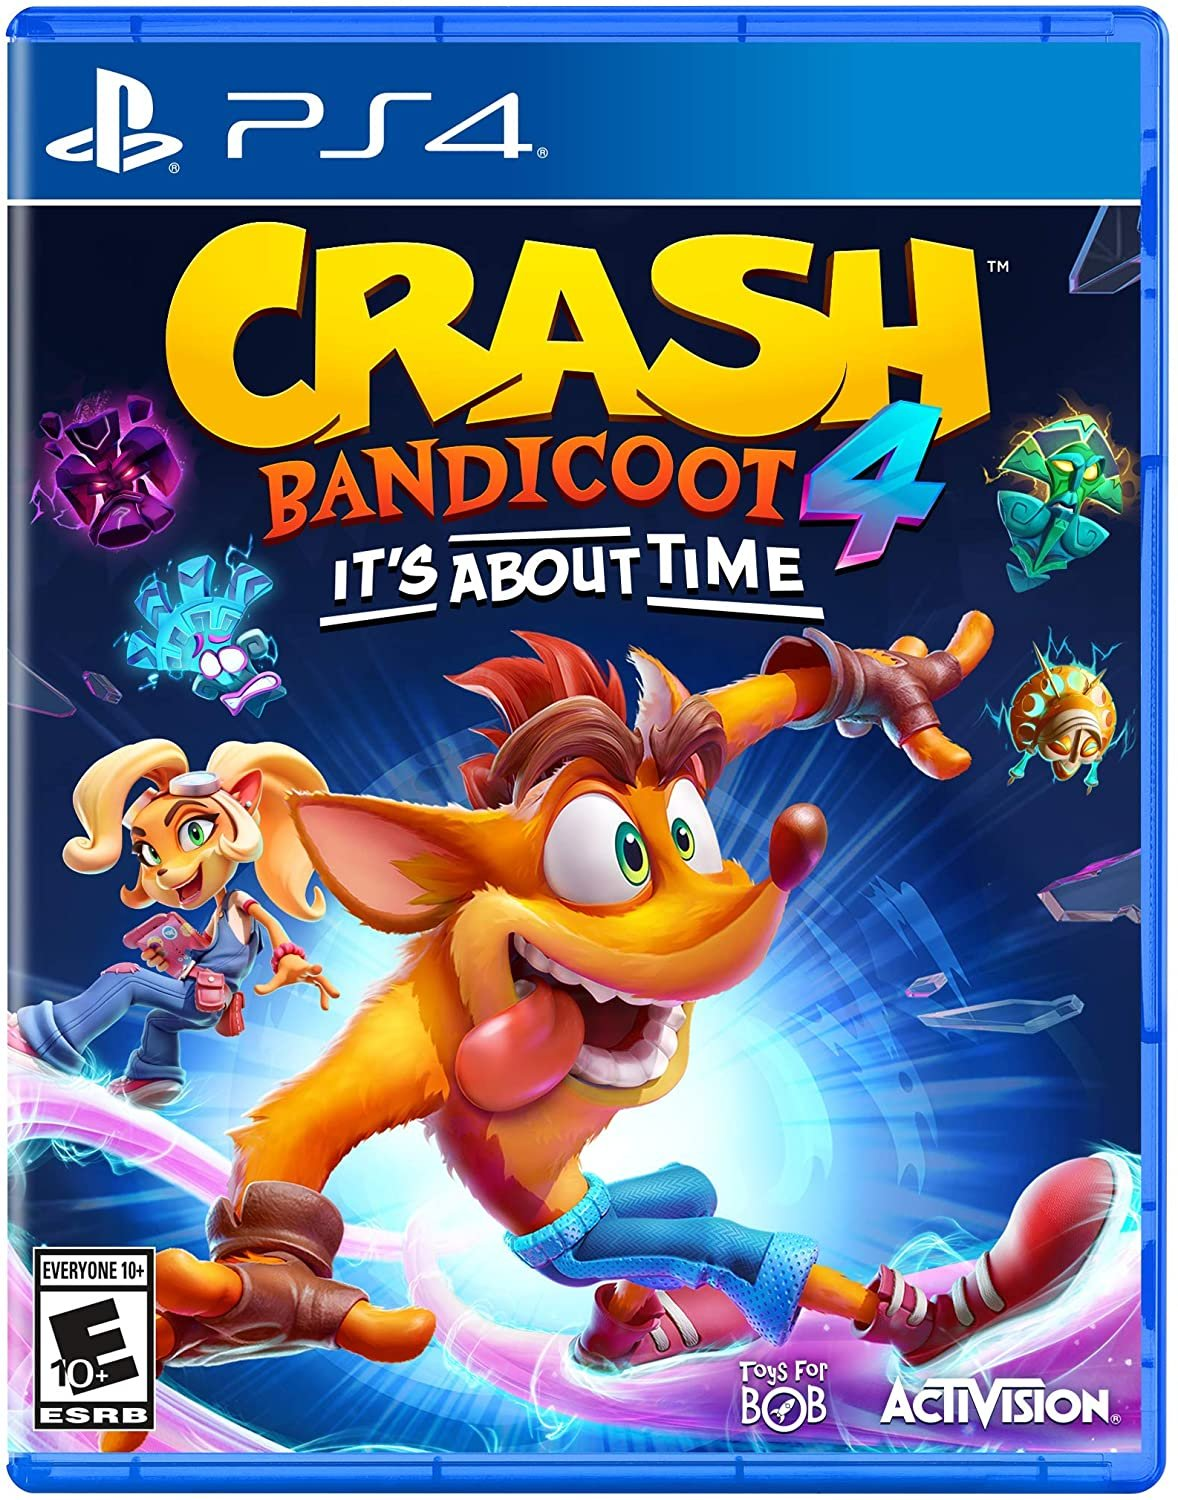 Crash Bandicoot 4: It's About Time (PS4) Review 1